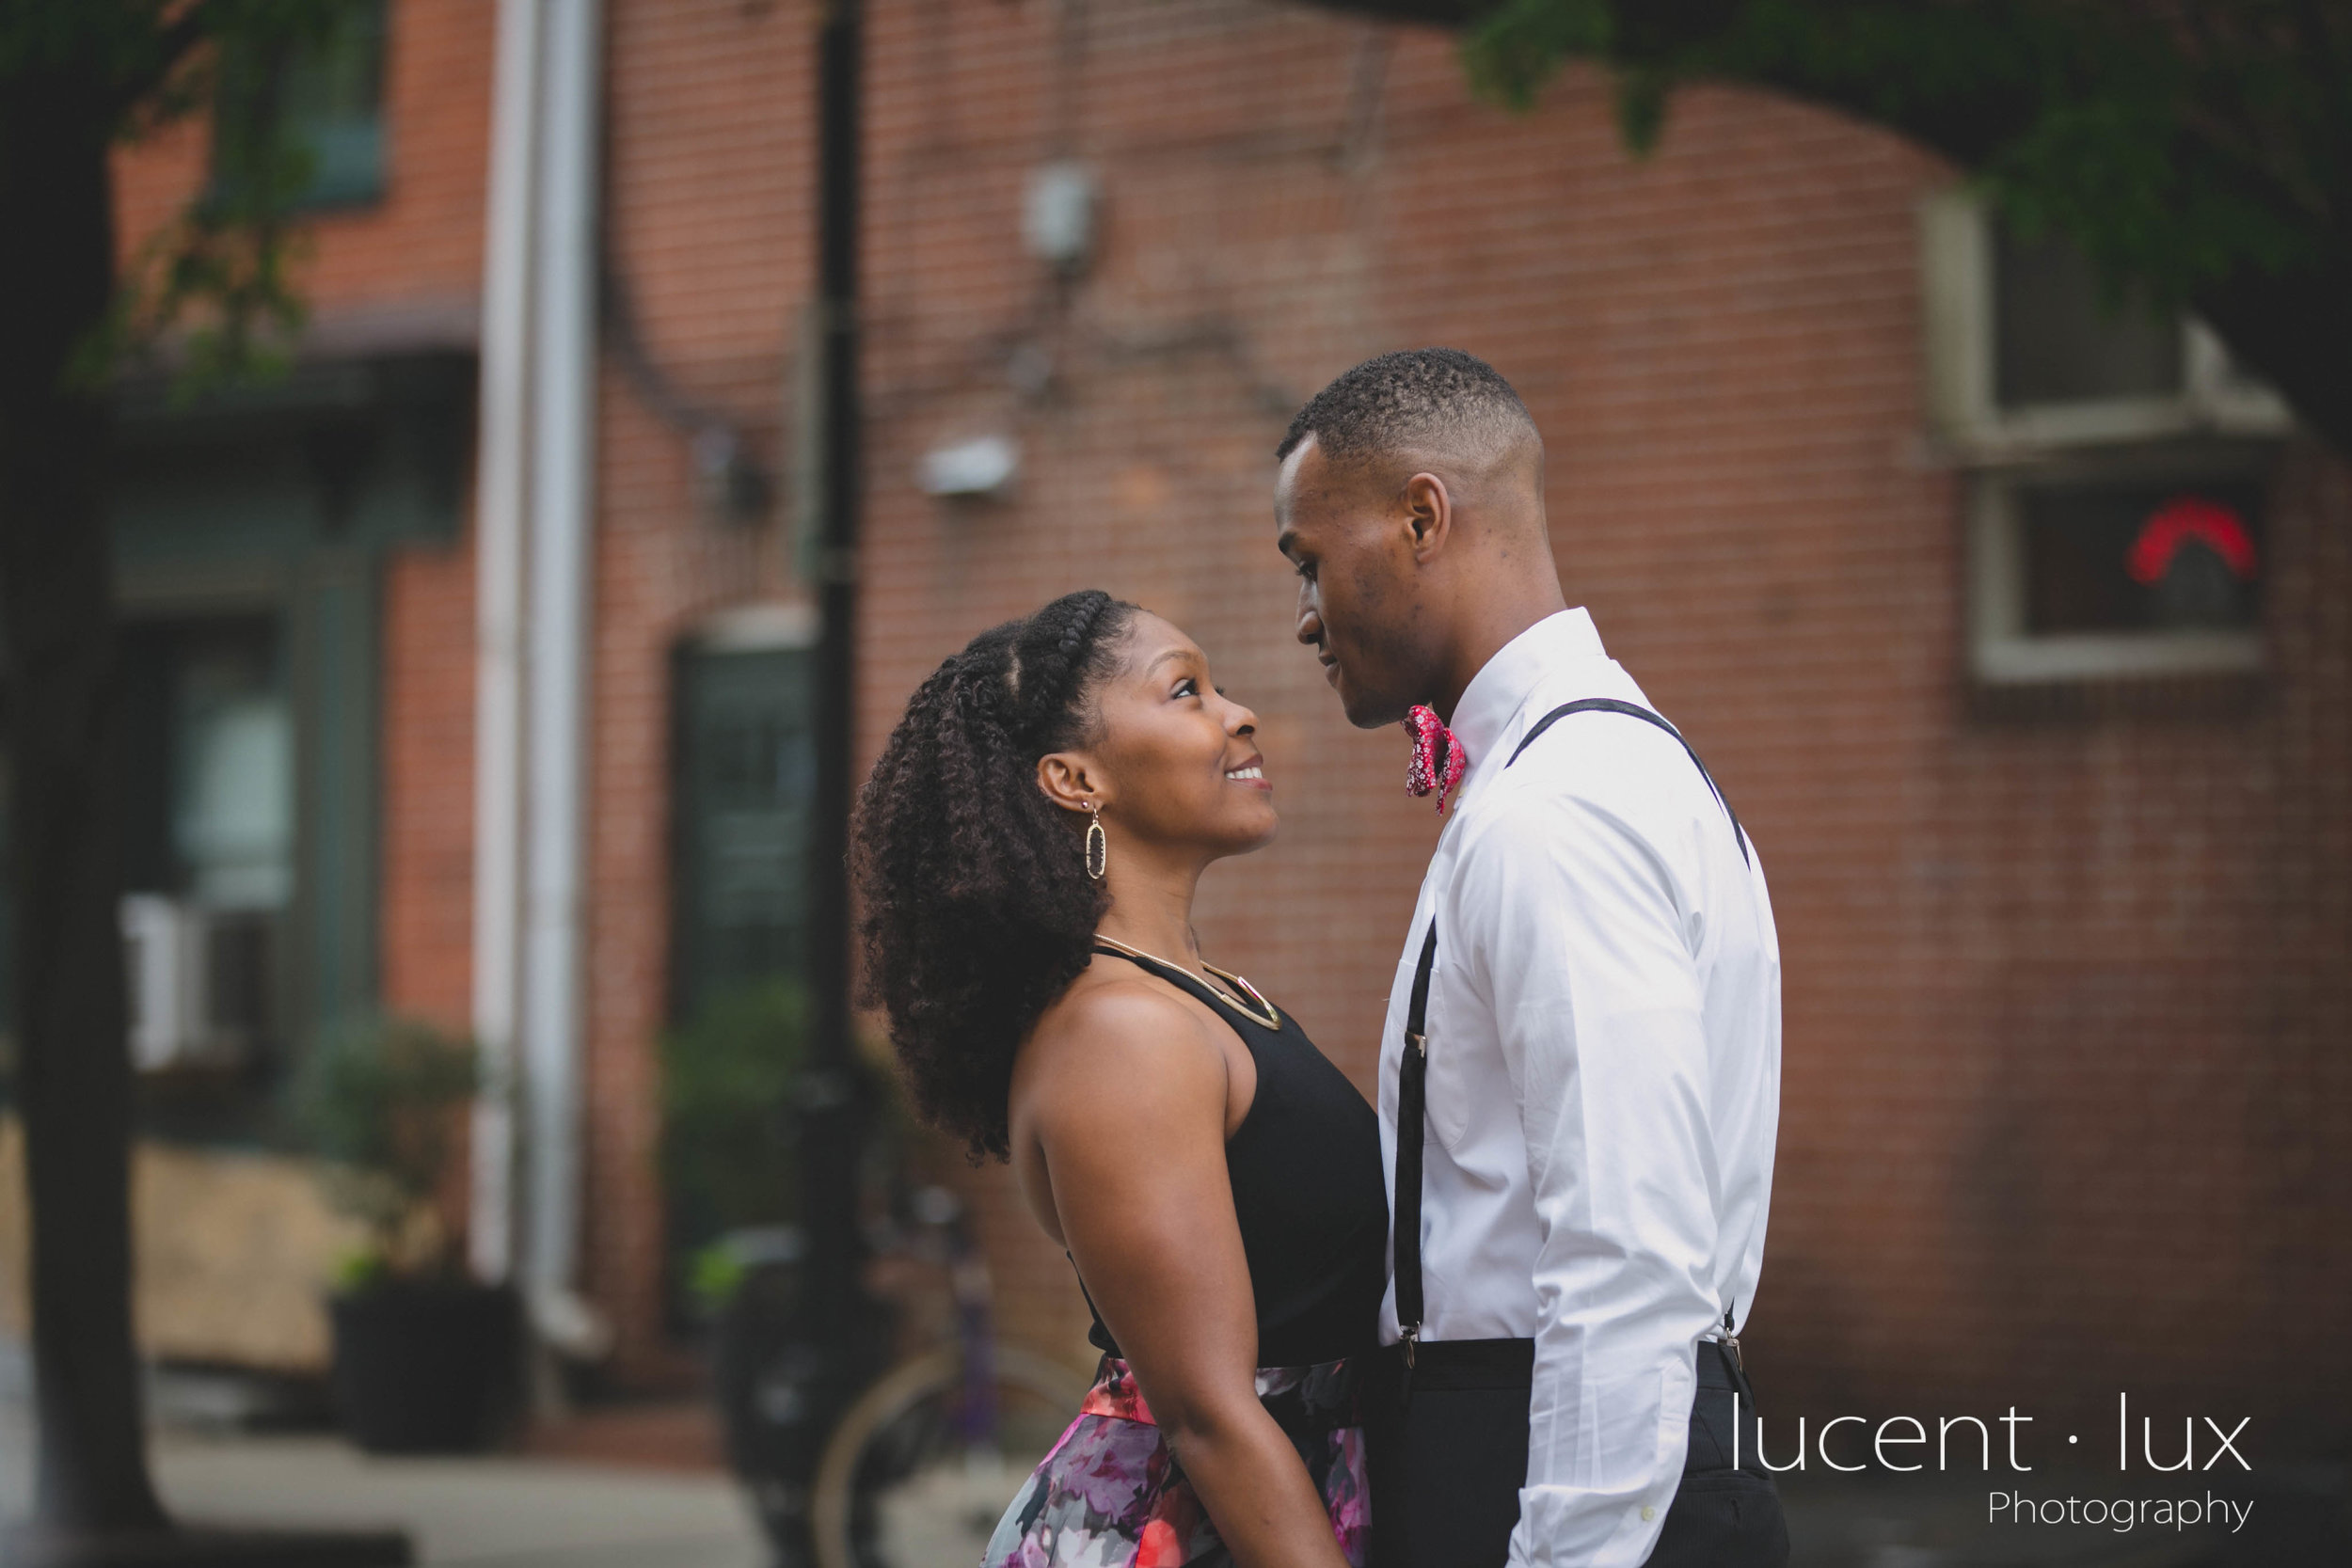 Fells-Point-Engagement-Photography-Maryland-Baltimore-Couple-131.jpg